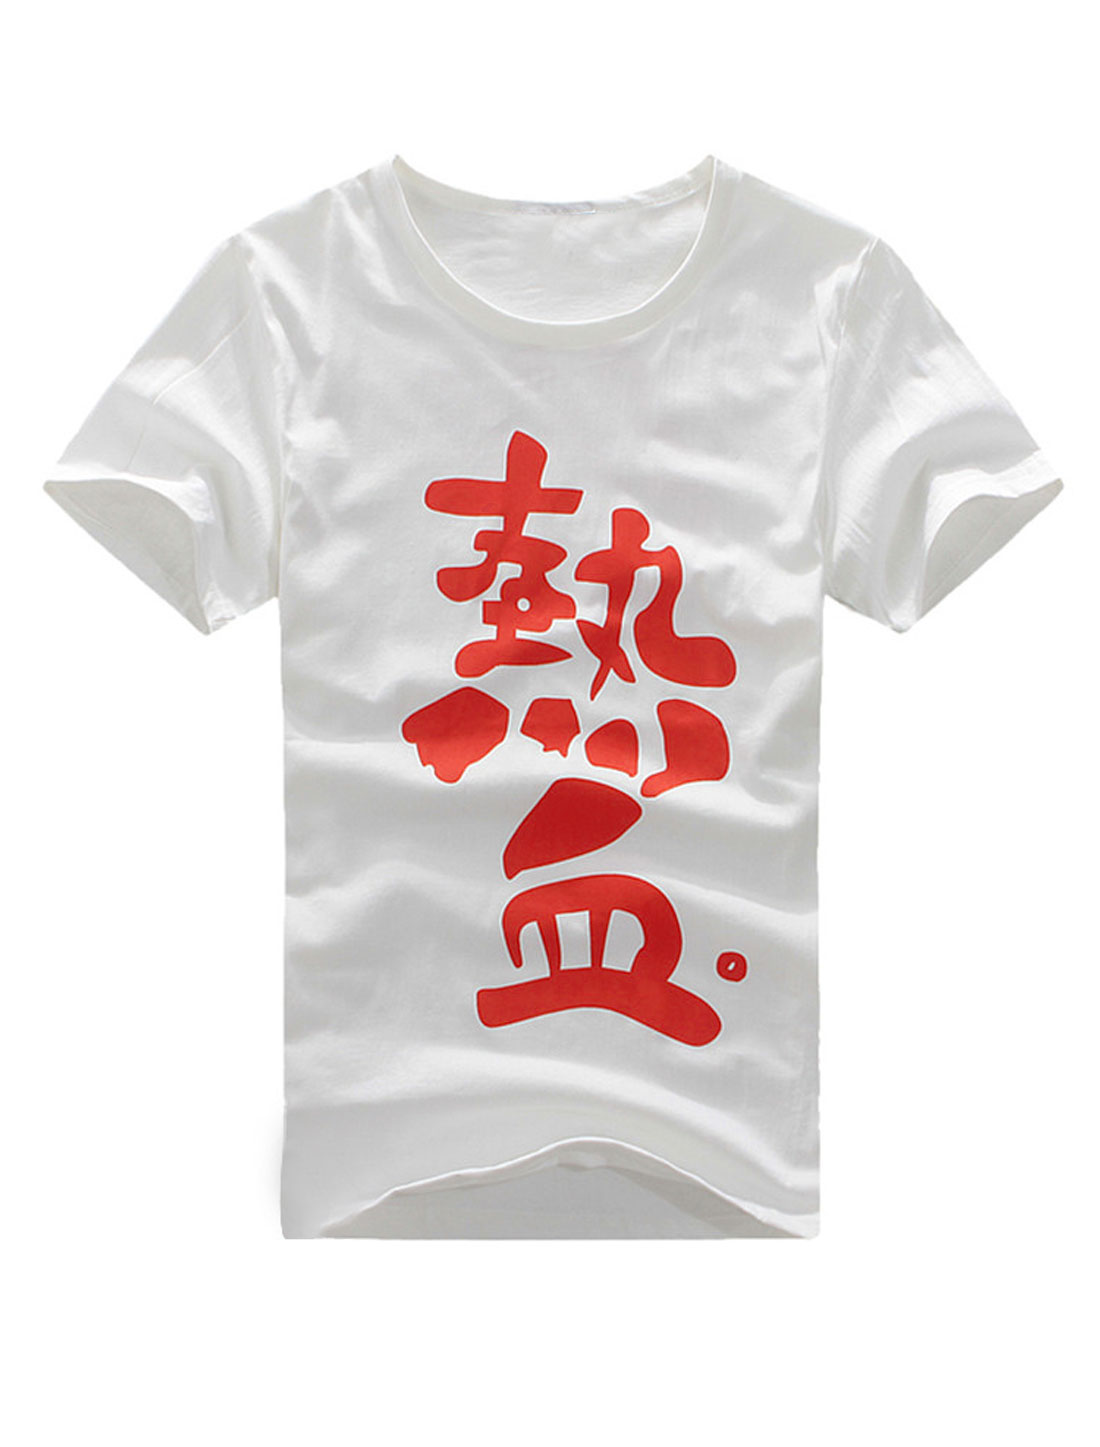 Man Round Neck Short Sleeve Chinese Character Pullover Tee Shirt White L